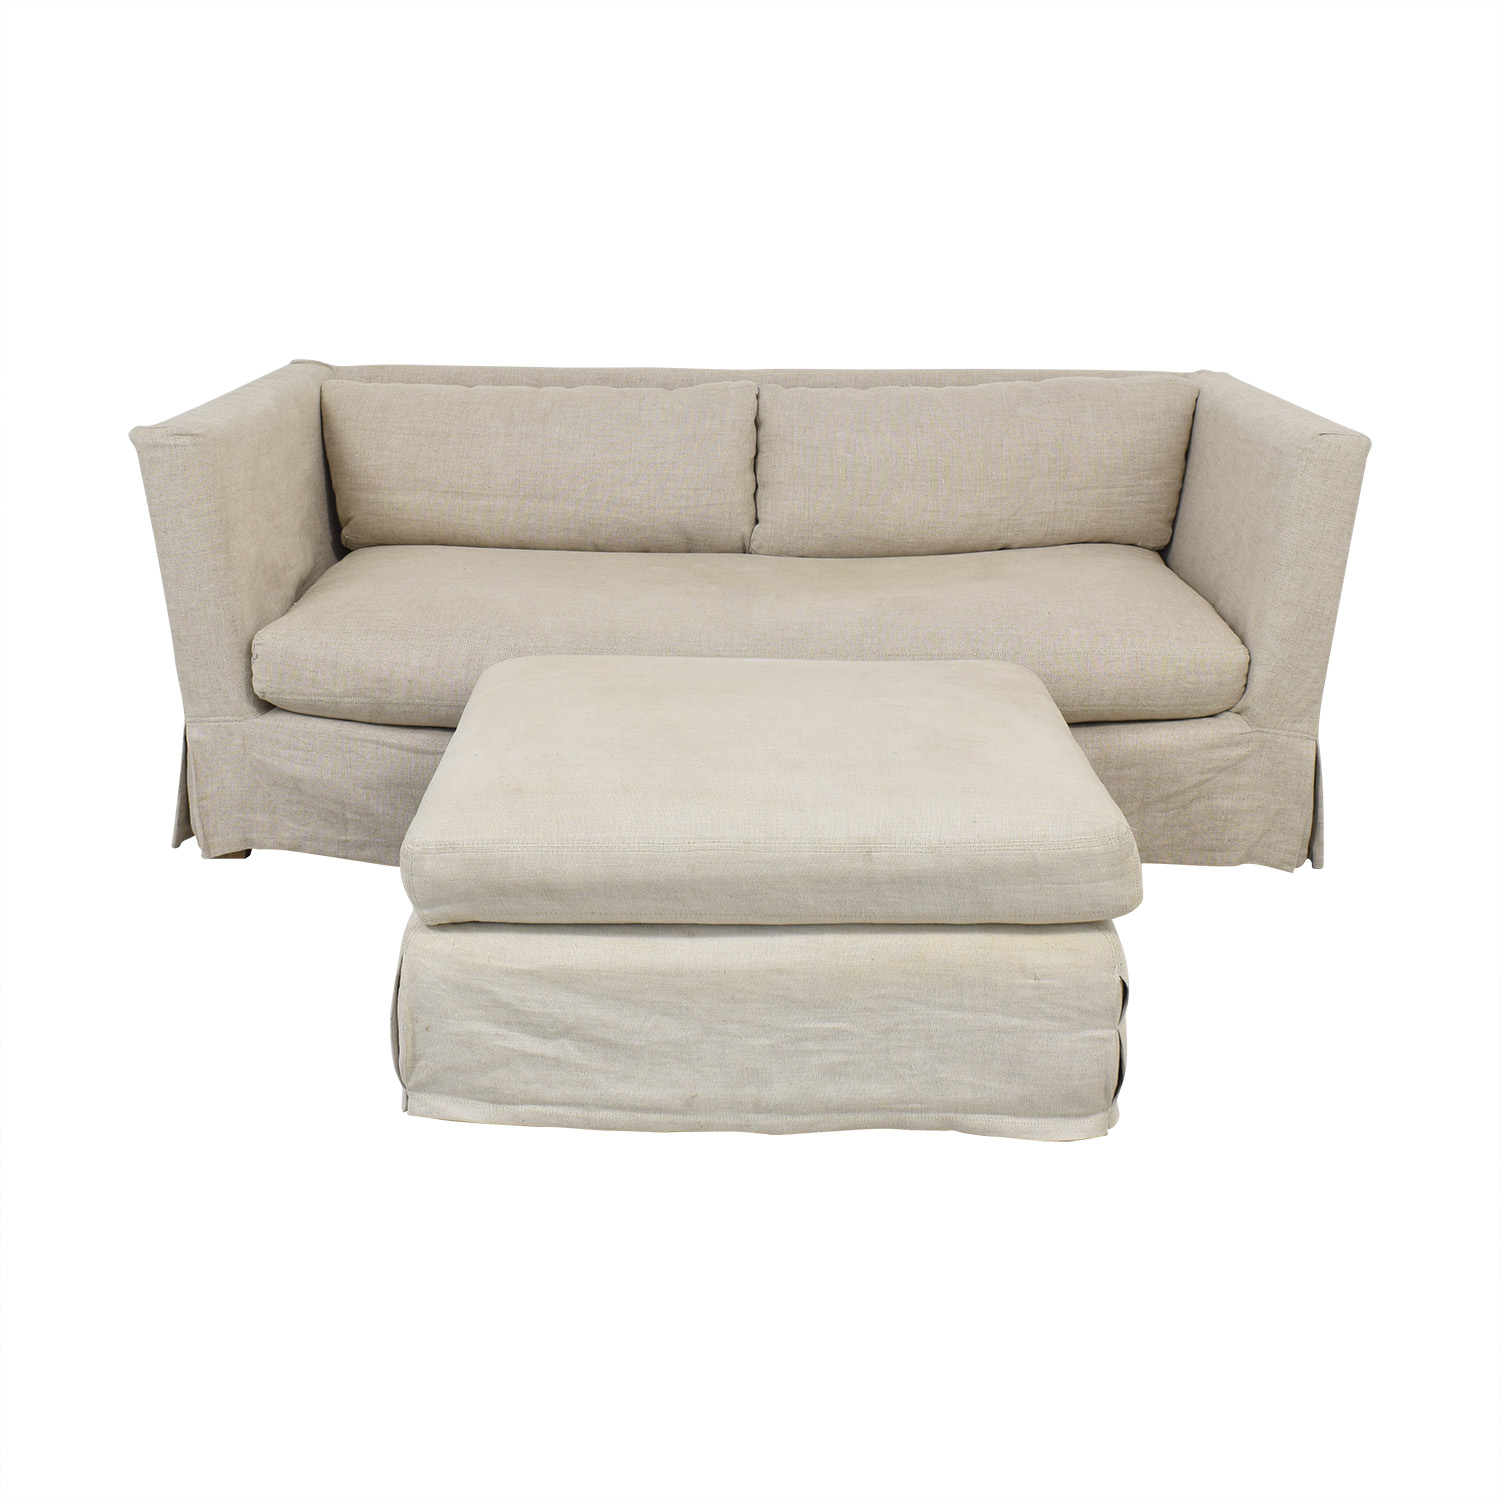 Restoration Hardware Belgian Shelter Arm Sofa & Ottoman Restoration Hardware